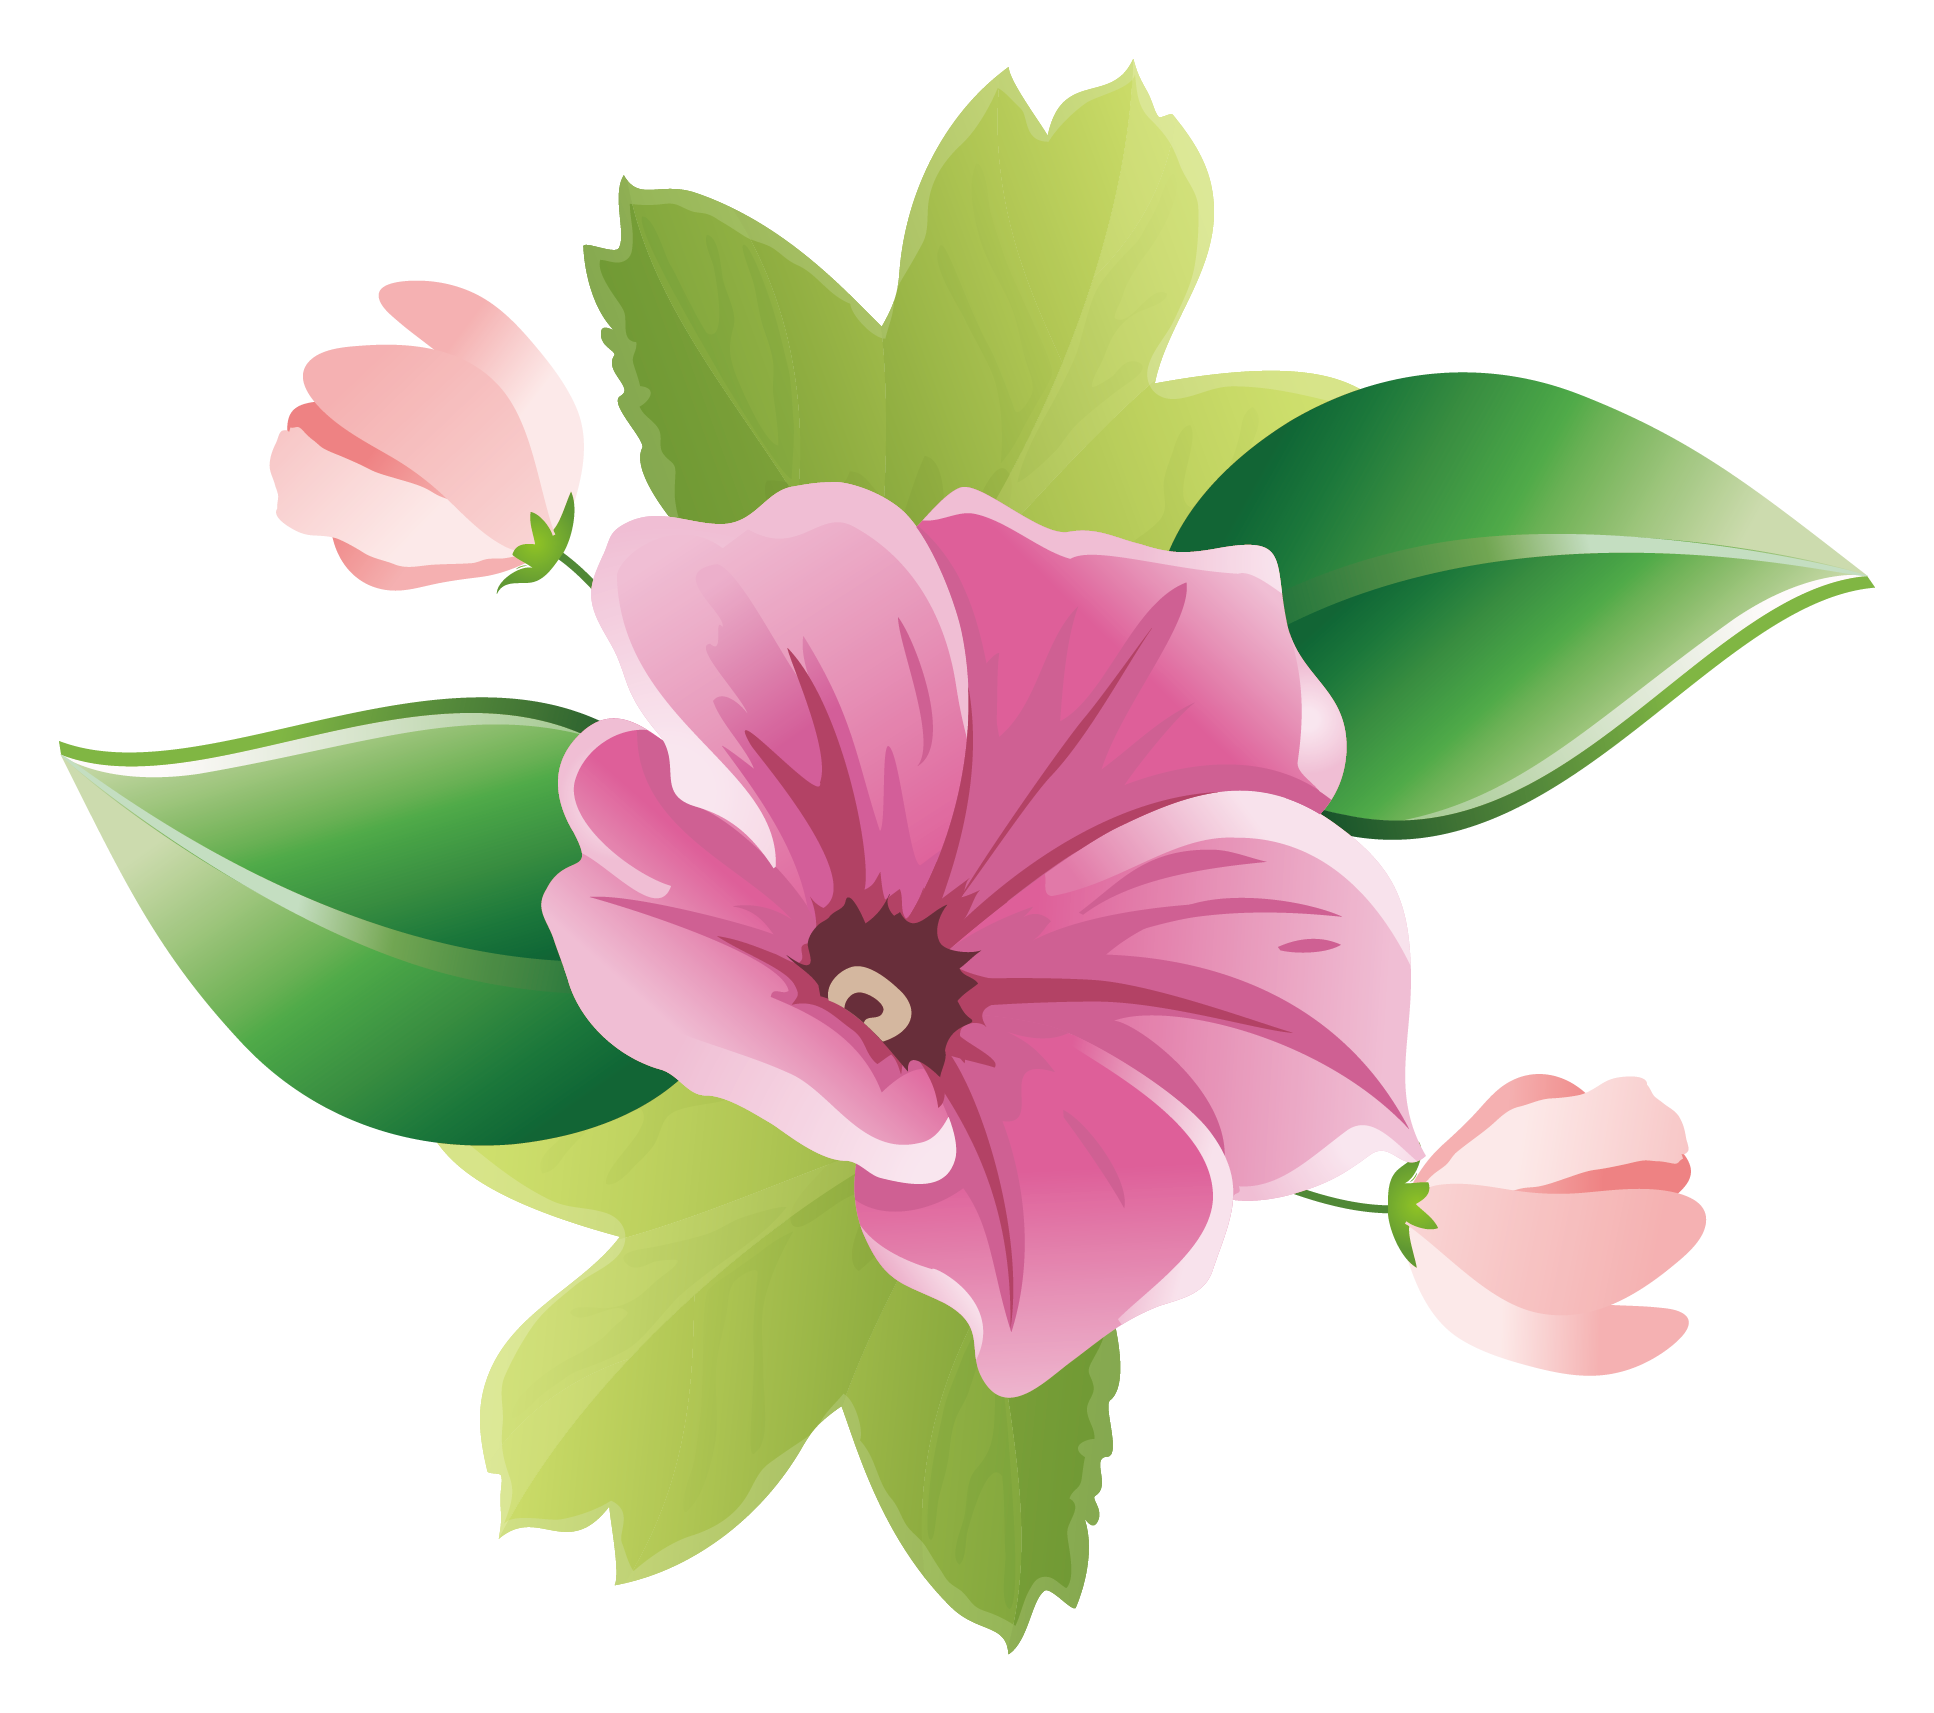 Garland png image. Floral design flower wreath